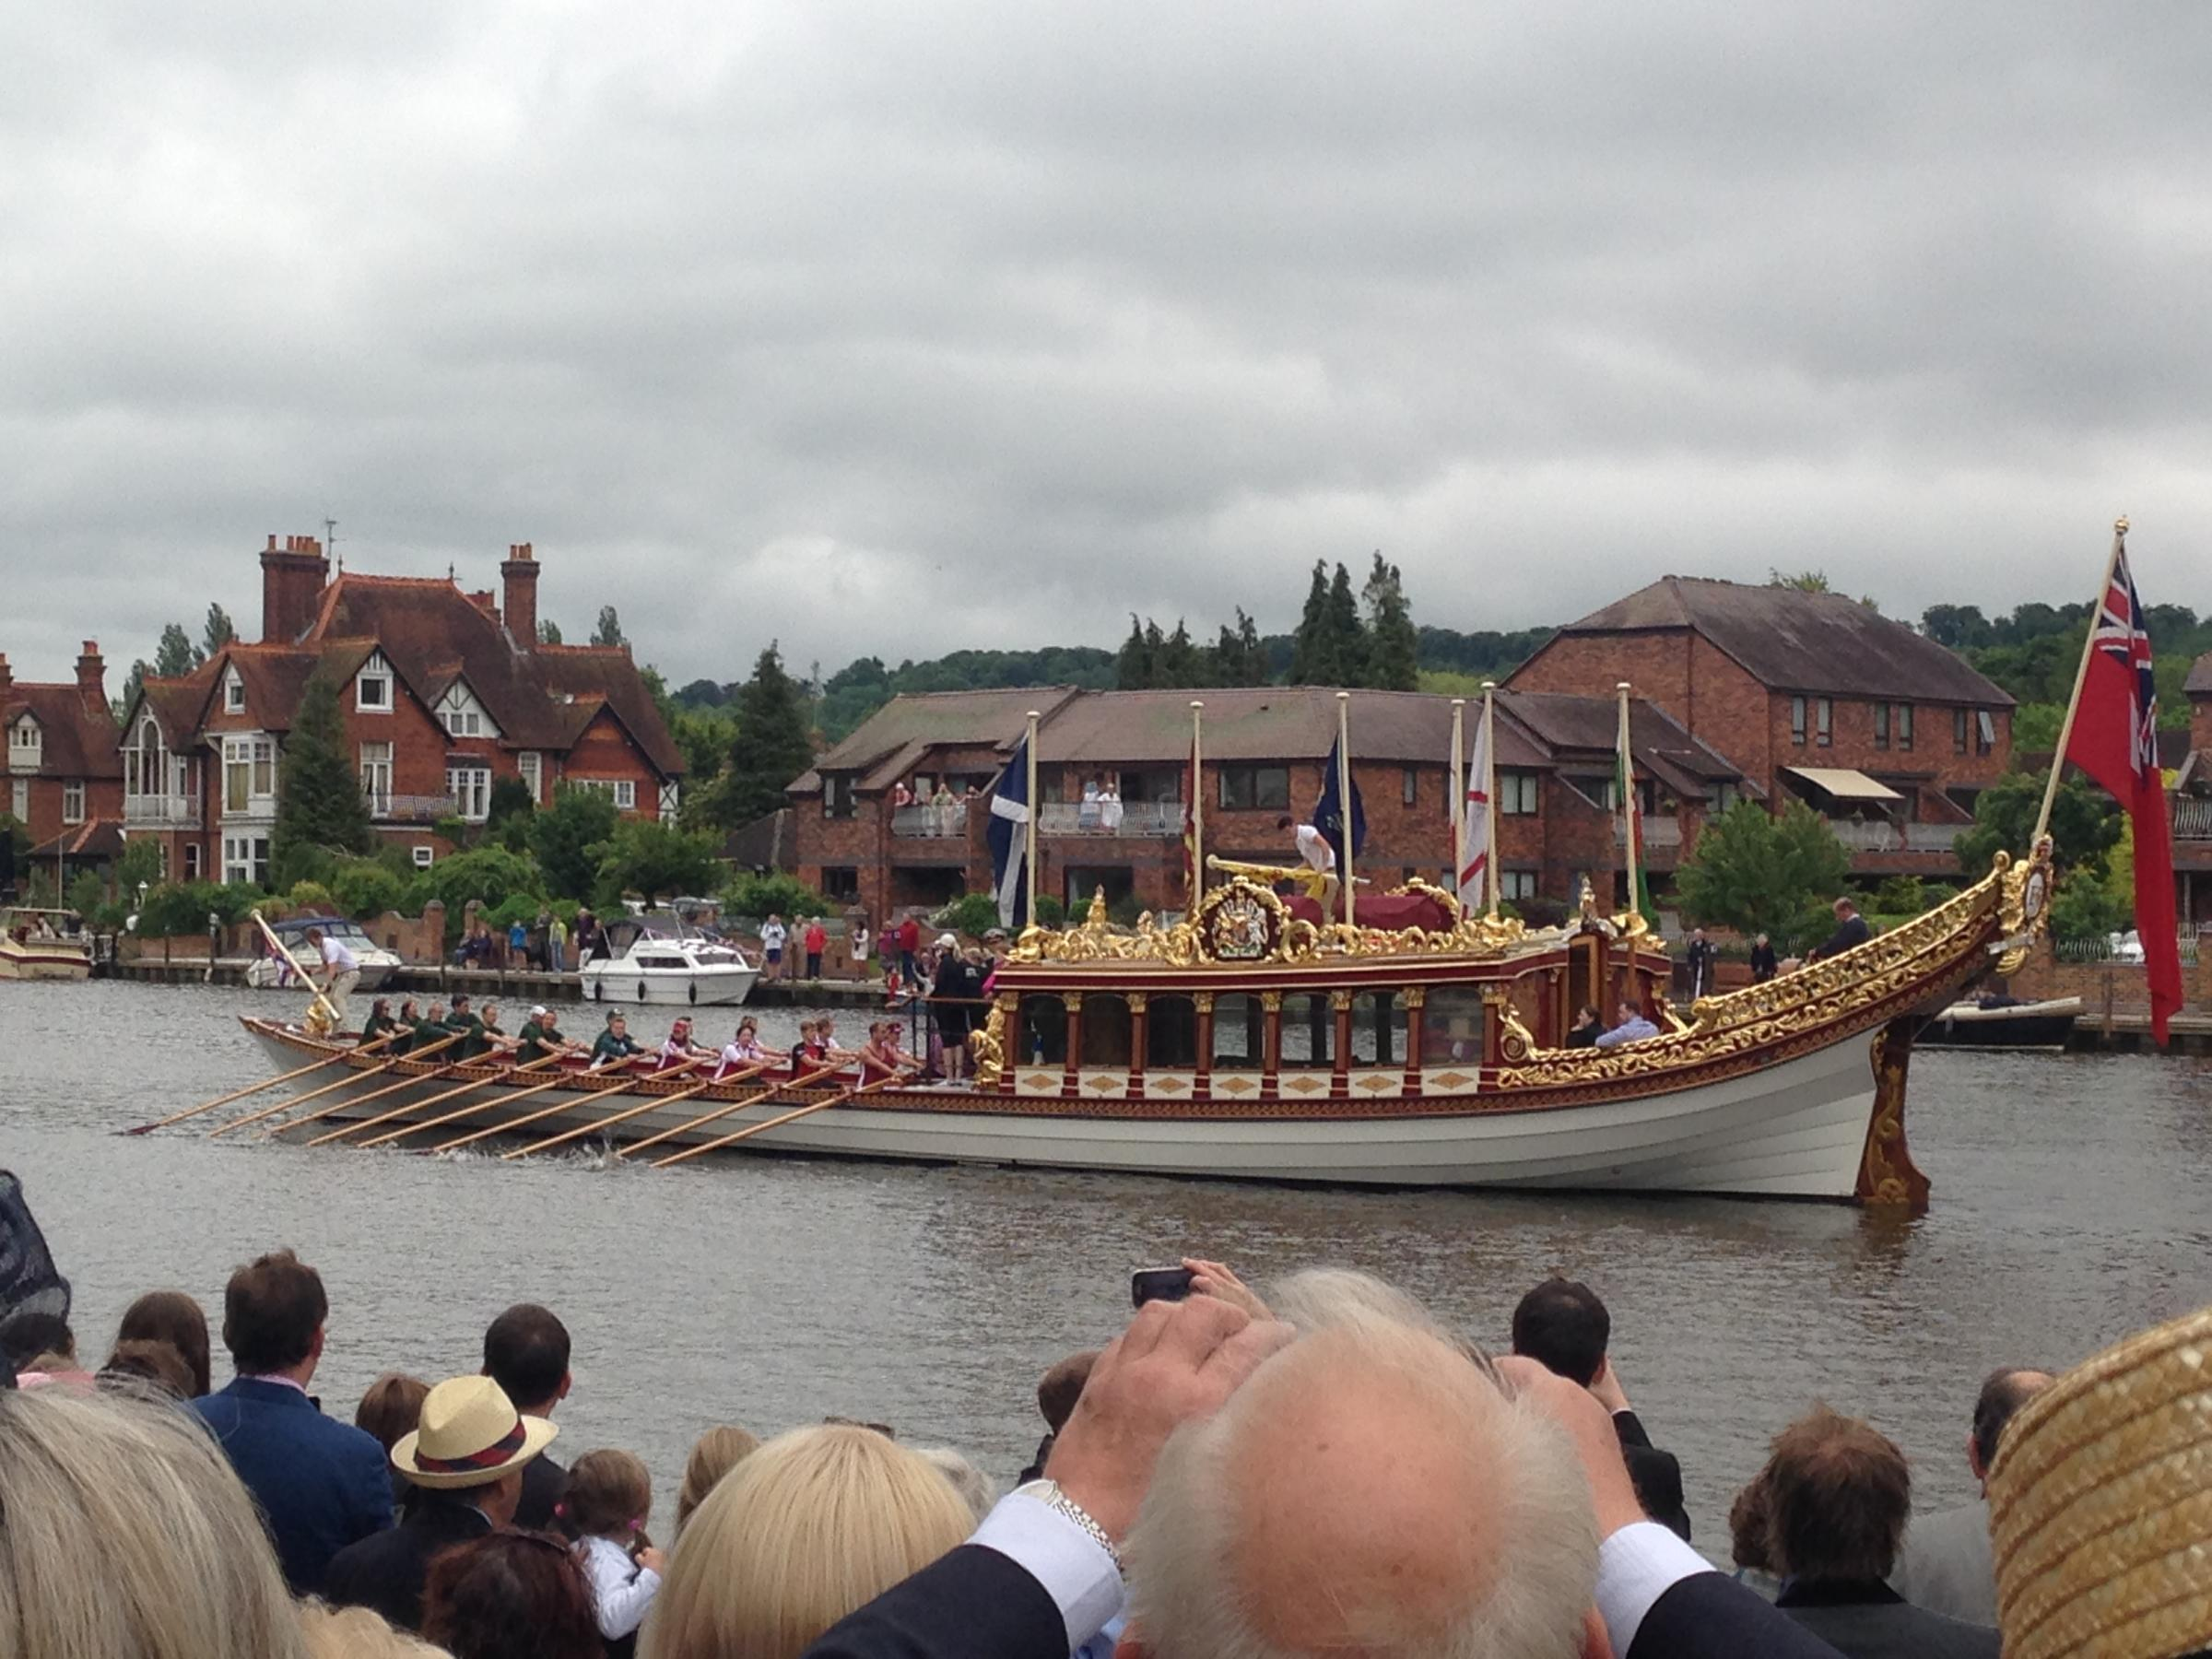 Queen's royal barge dazzles at drizzly regatta